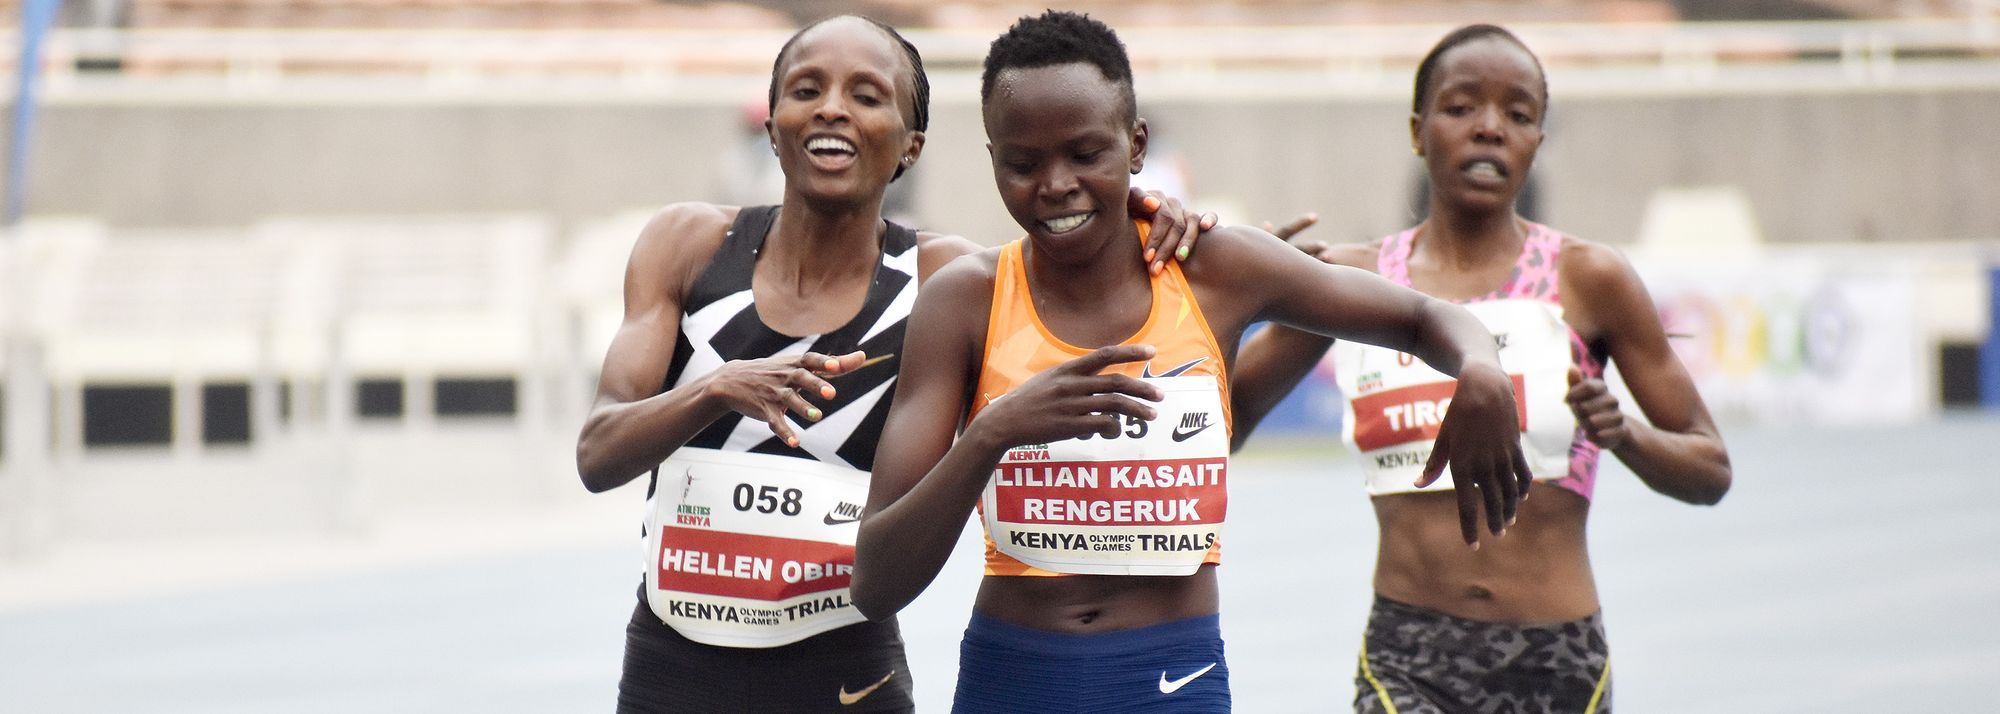 Lilian Kasait Rengeruk and Hellen Obiri secured their Tokyo Olympic Games places by finishing in the top two of a women's 5000m final which saw four women dip under 15 minutes at the Kenyan Championships in Nairobi on Thursday.